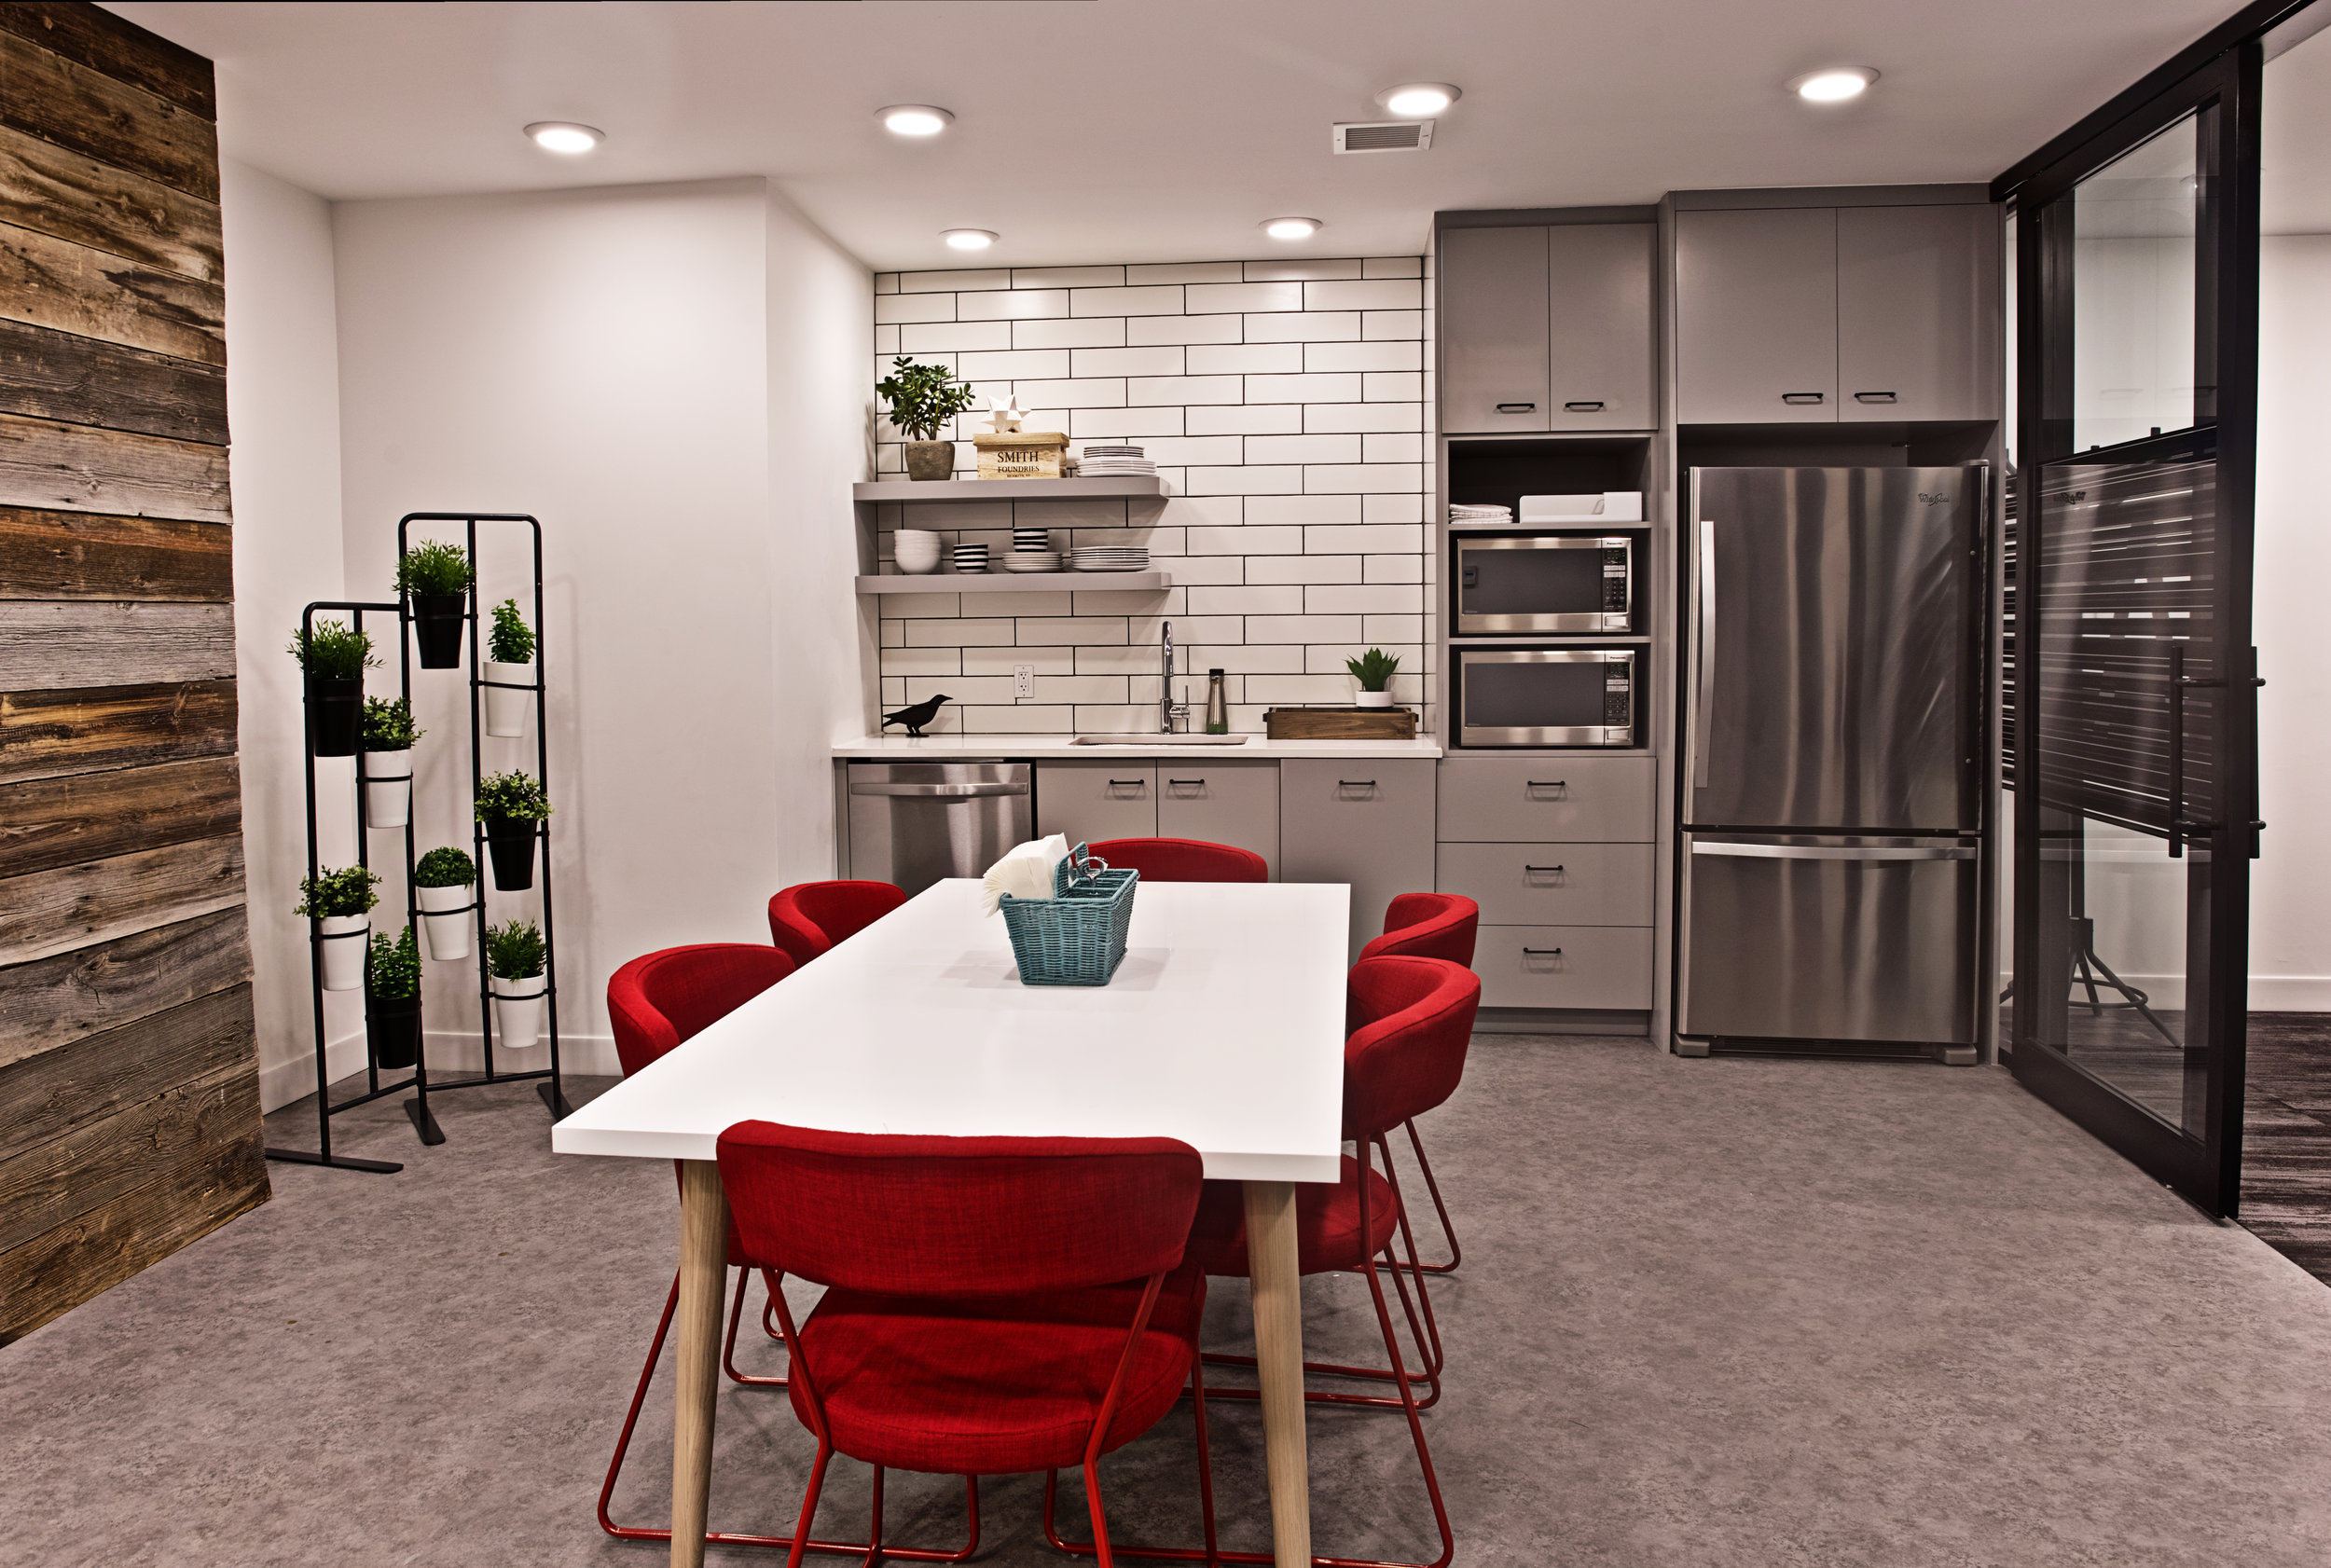 Shared Office Space Kitchen